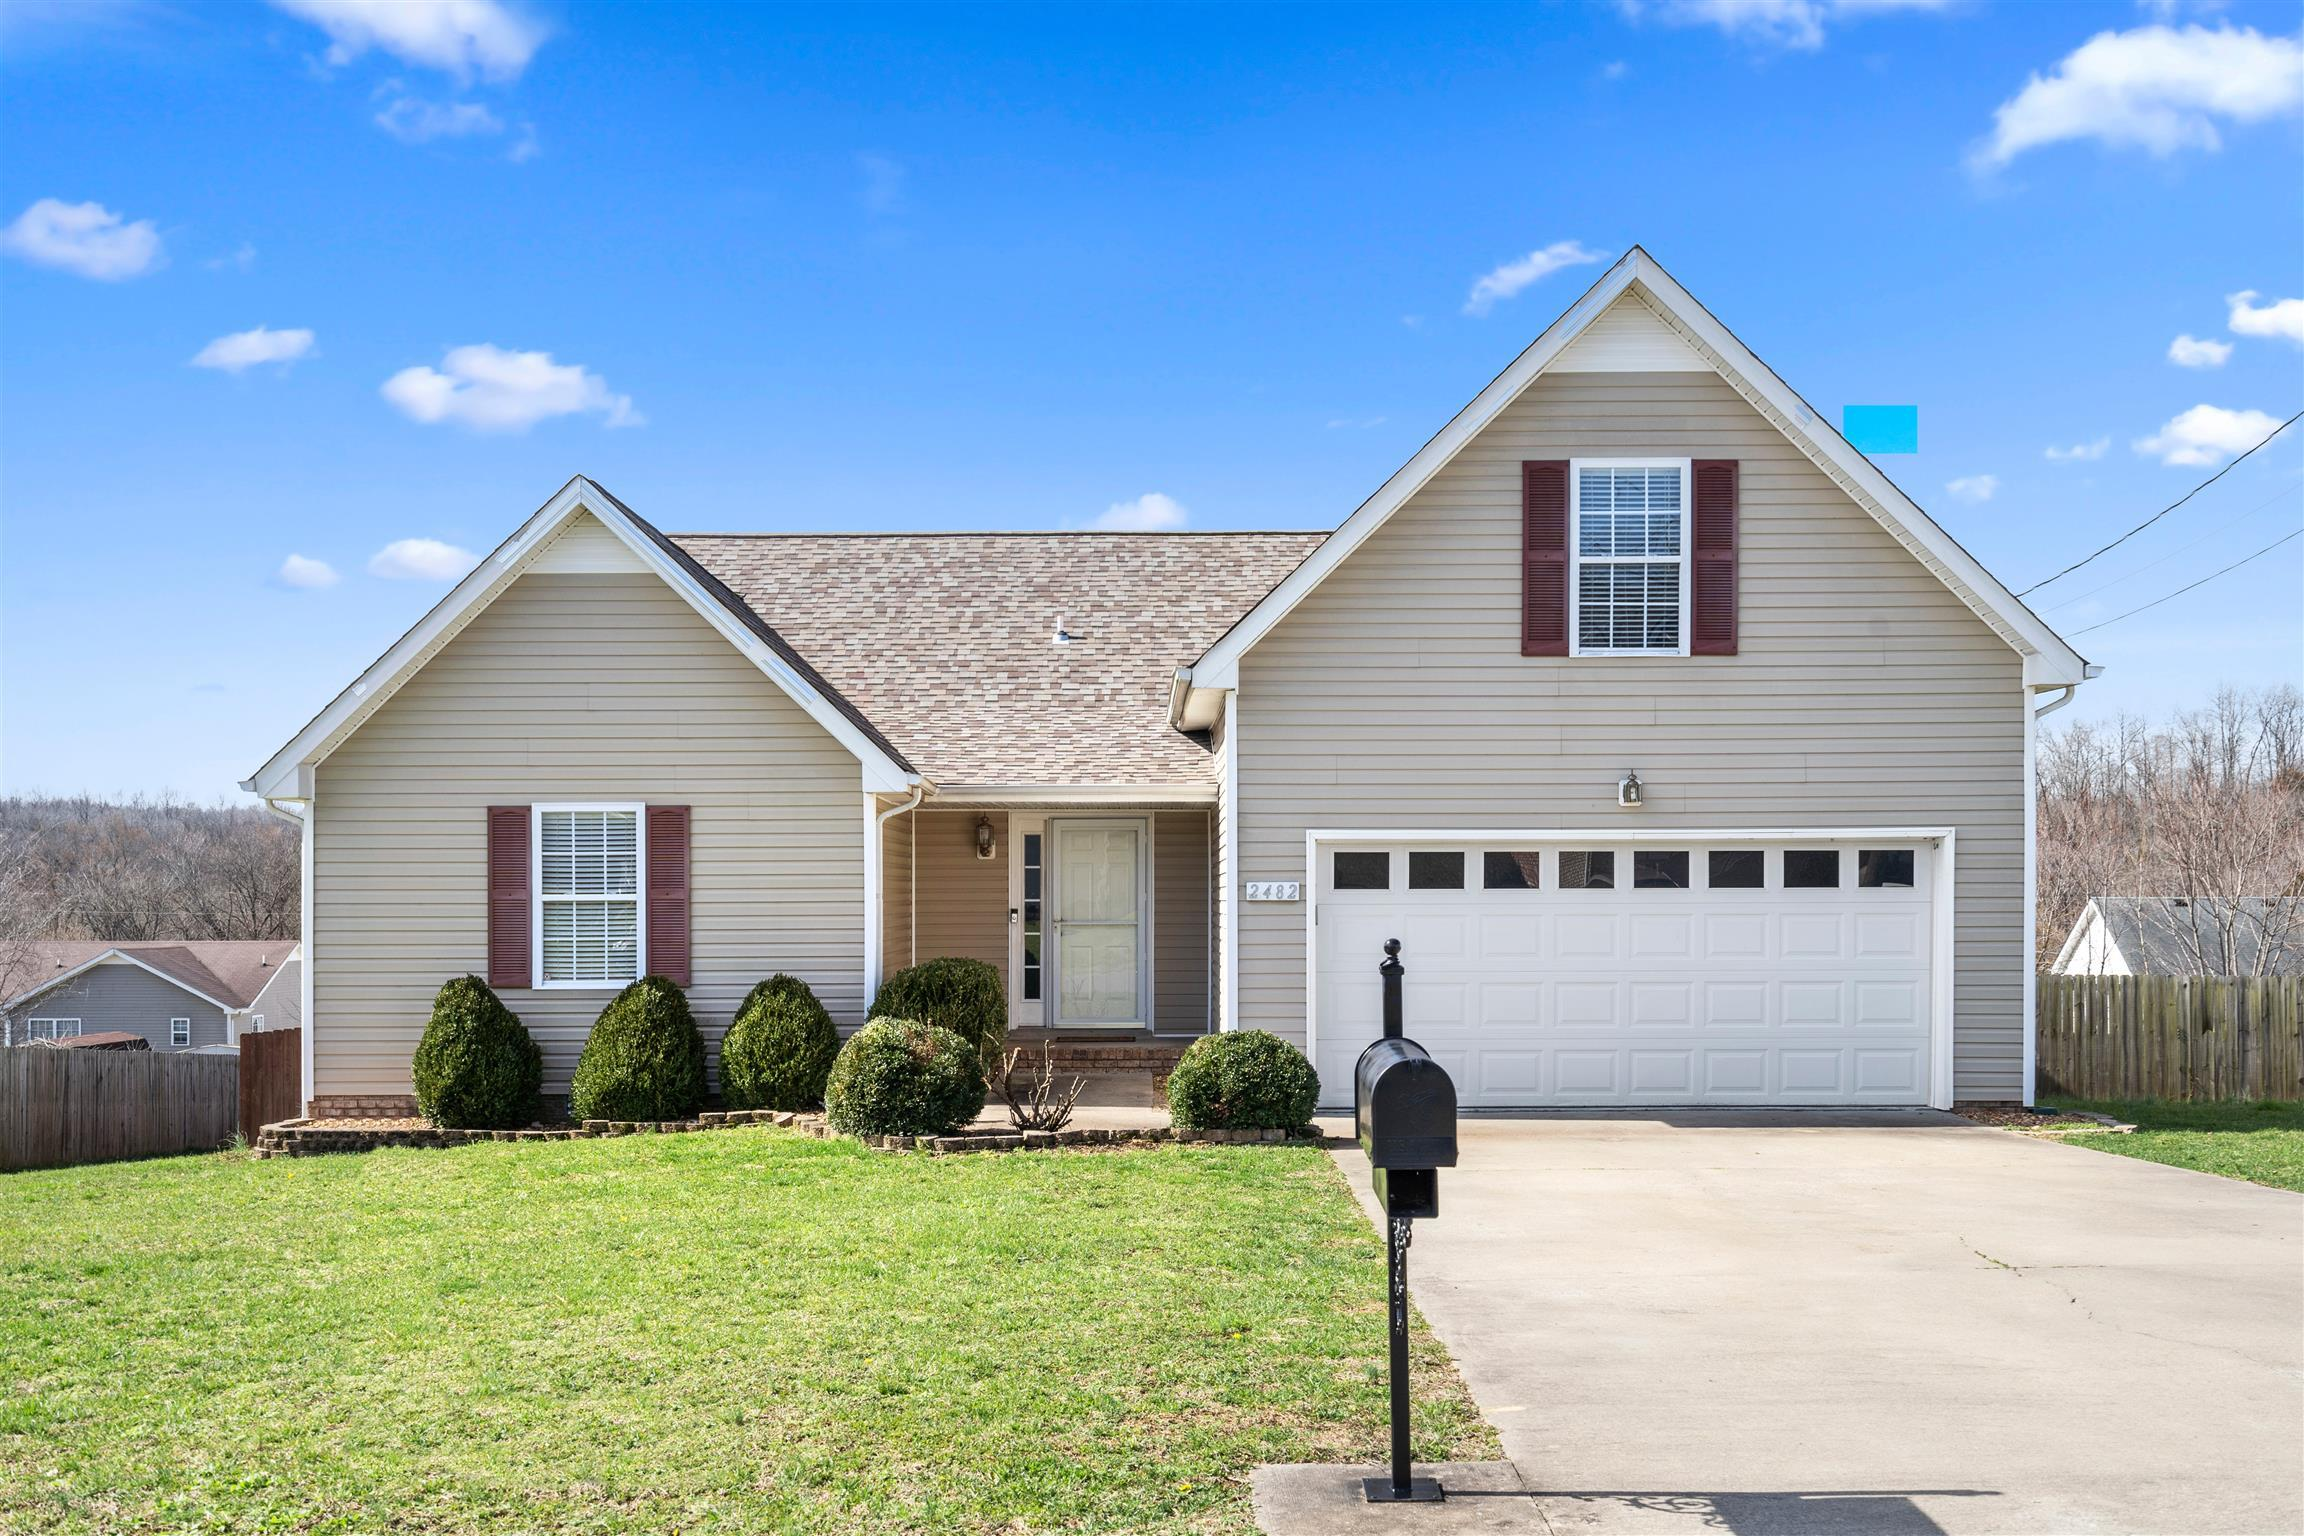 Homes for Sale in Sugartree Subdivision Clarksville TN